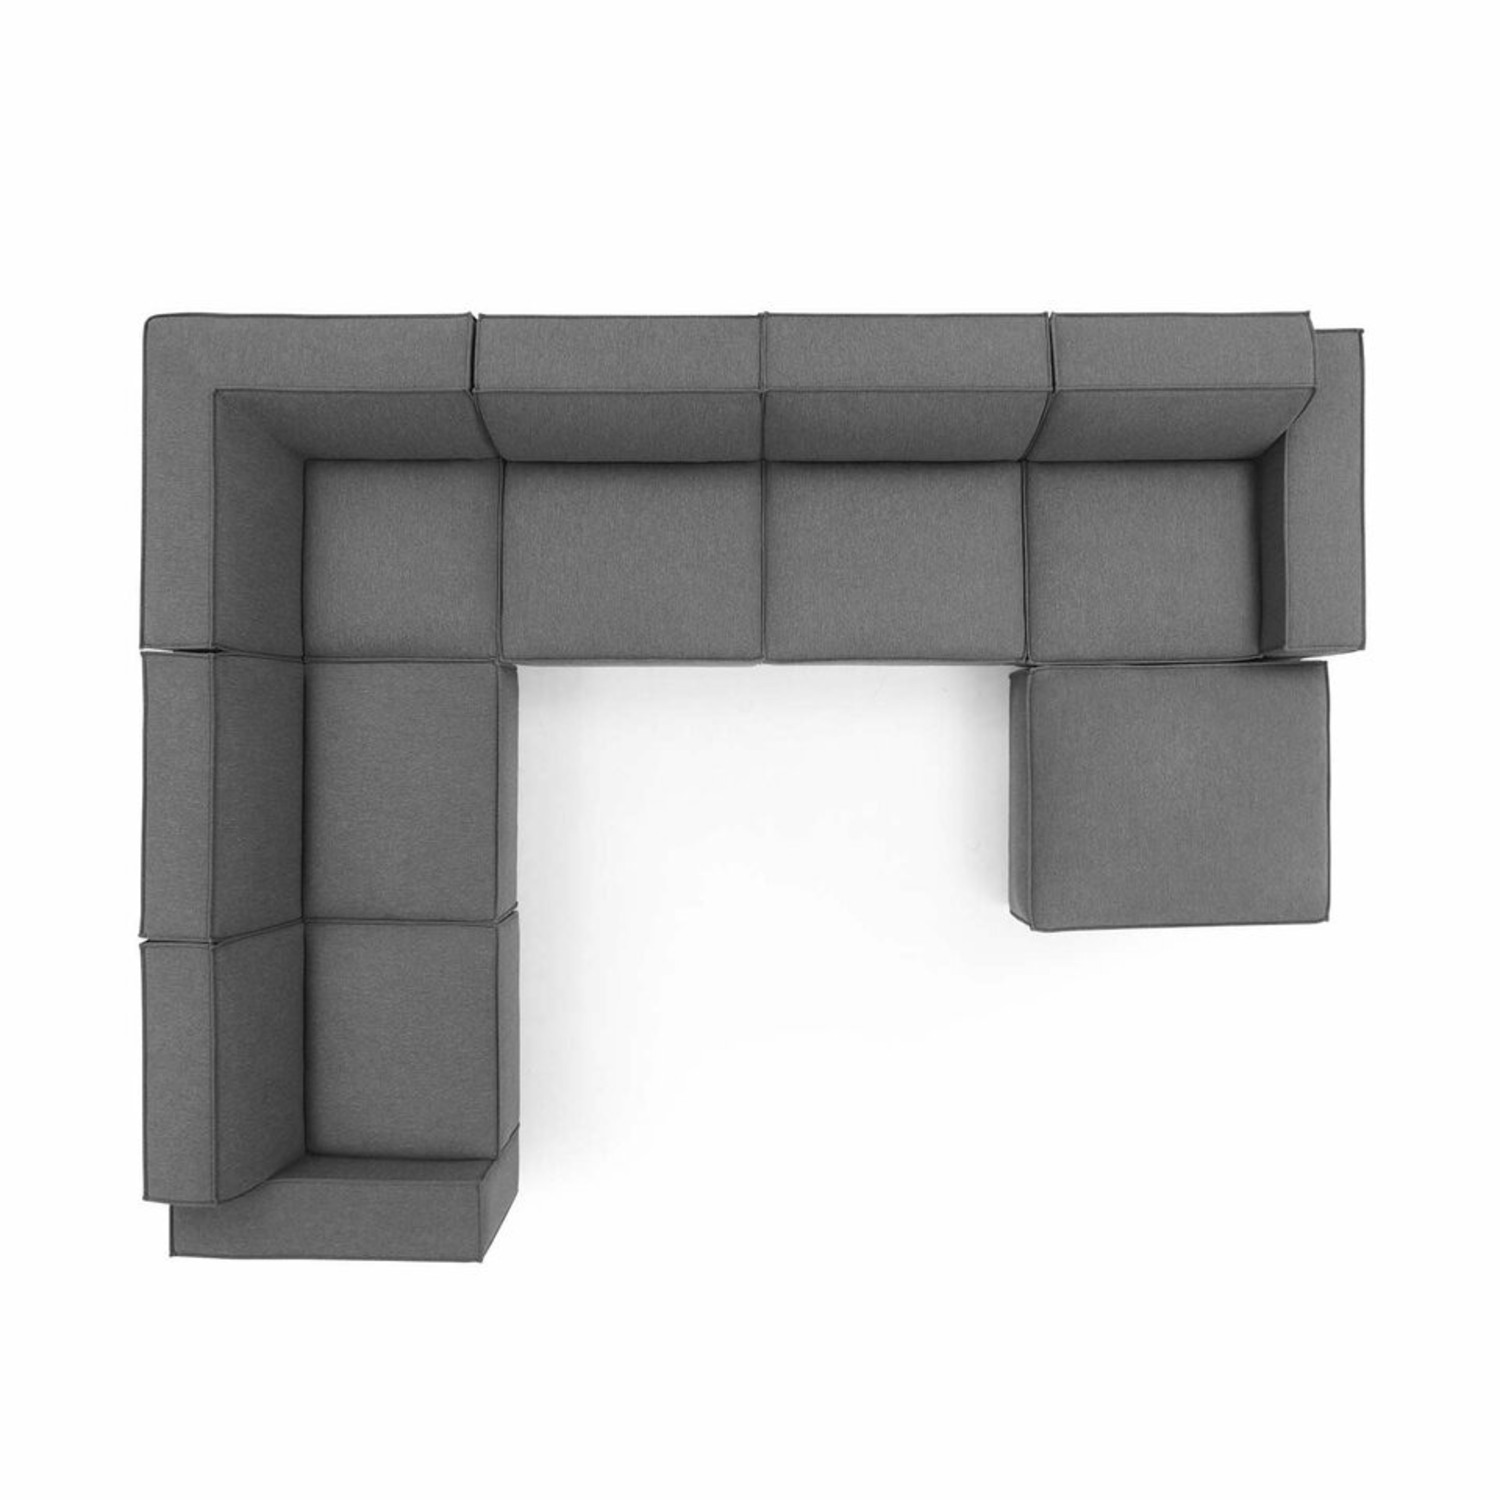 7-Piece Sectional Sofa In Charcoal Upholstery - image-1